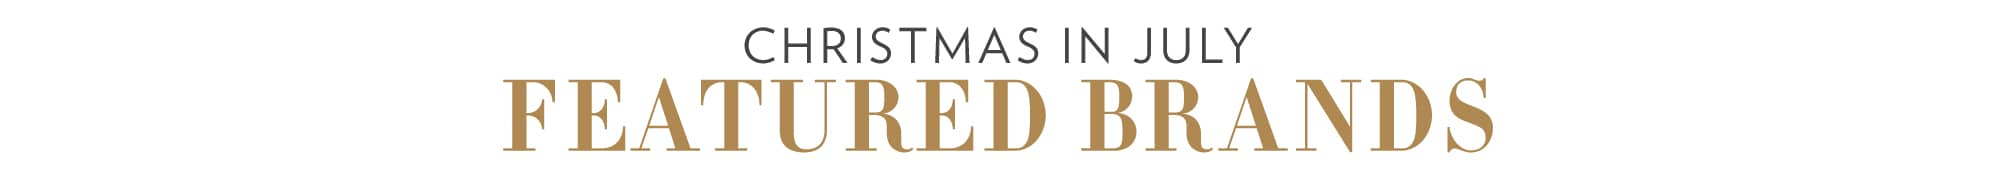 Christmas in July Featured Brands